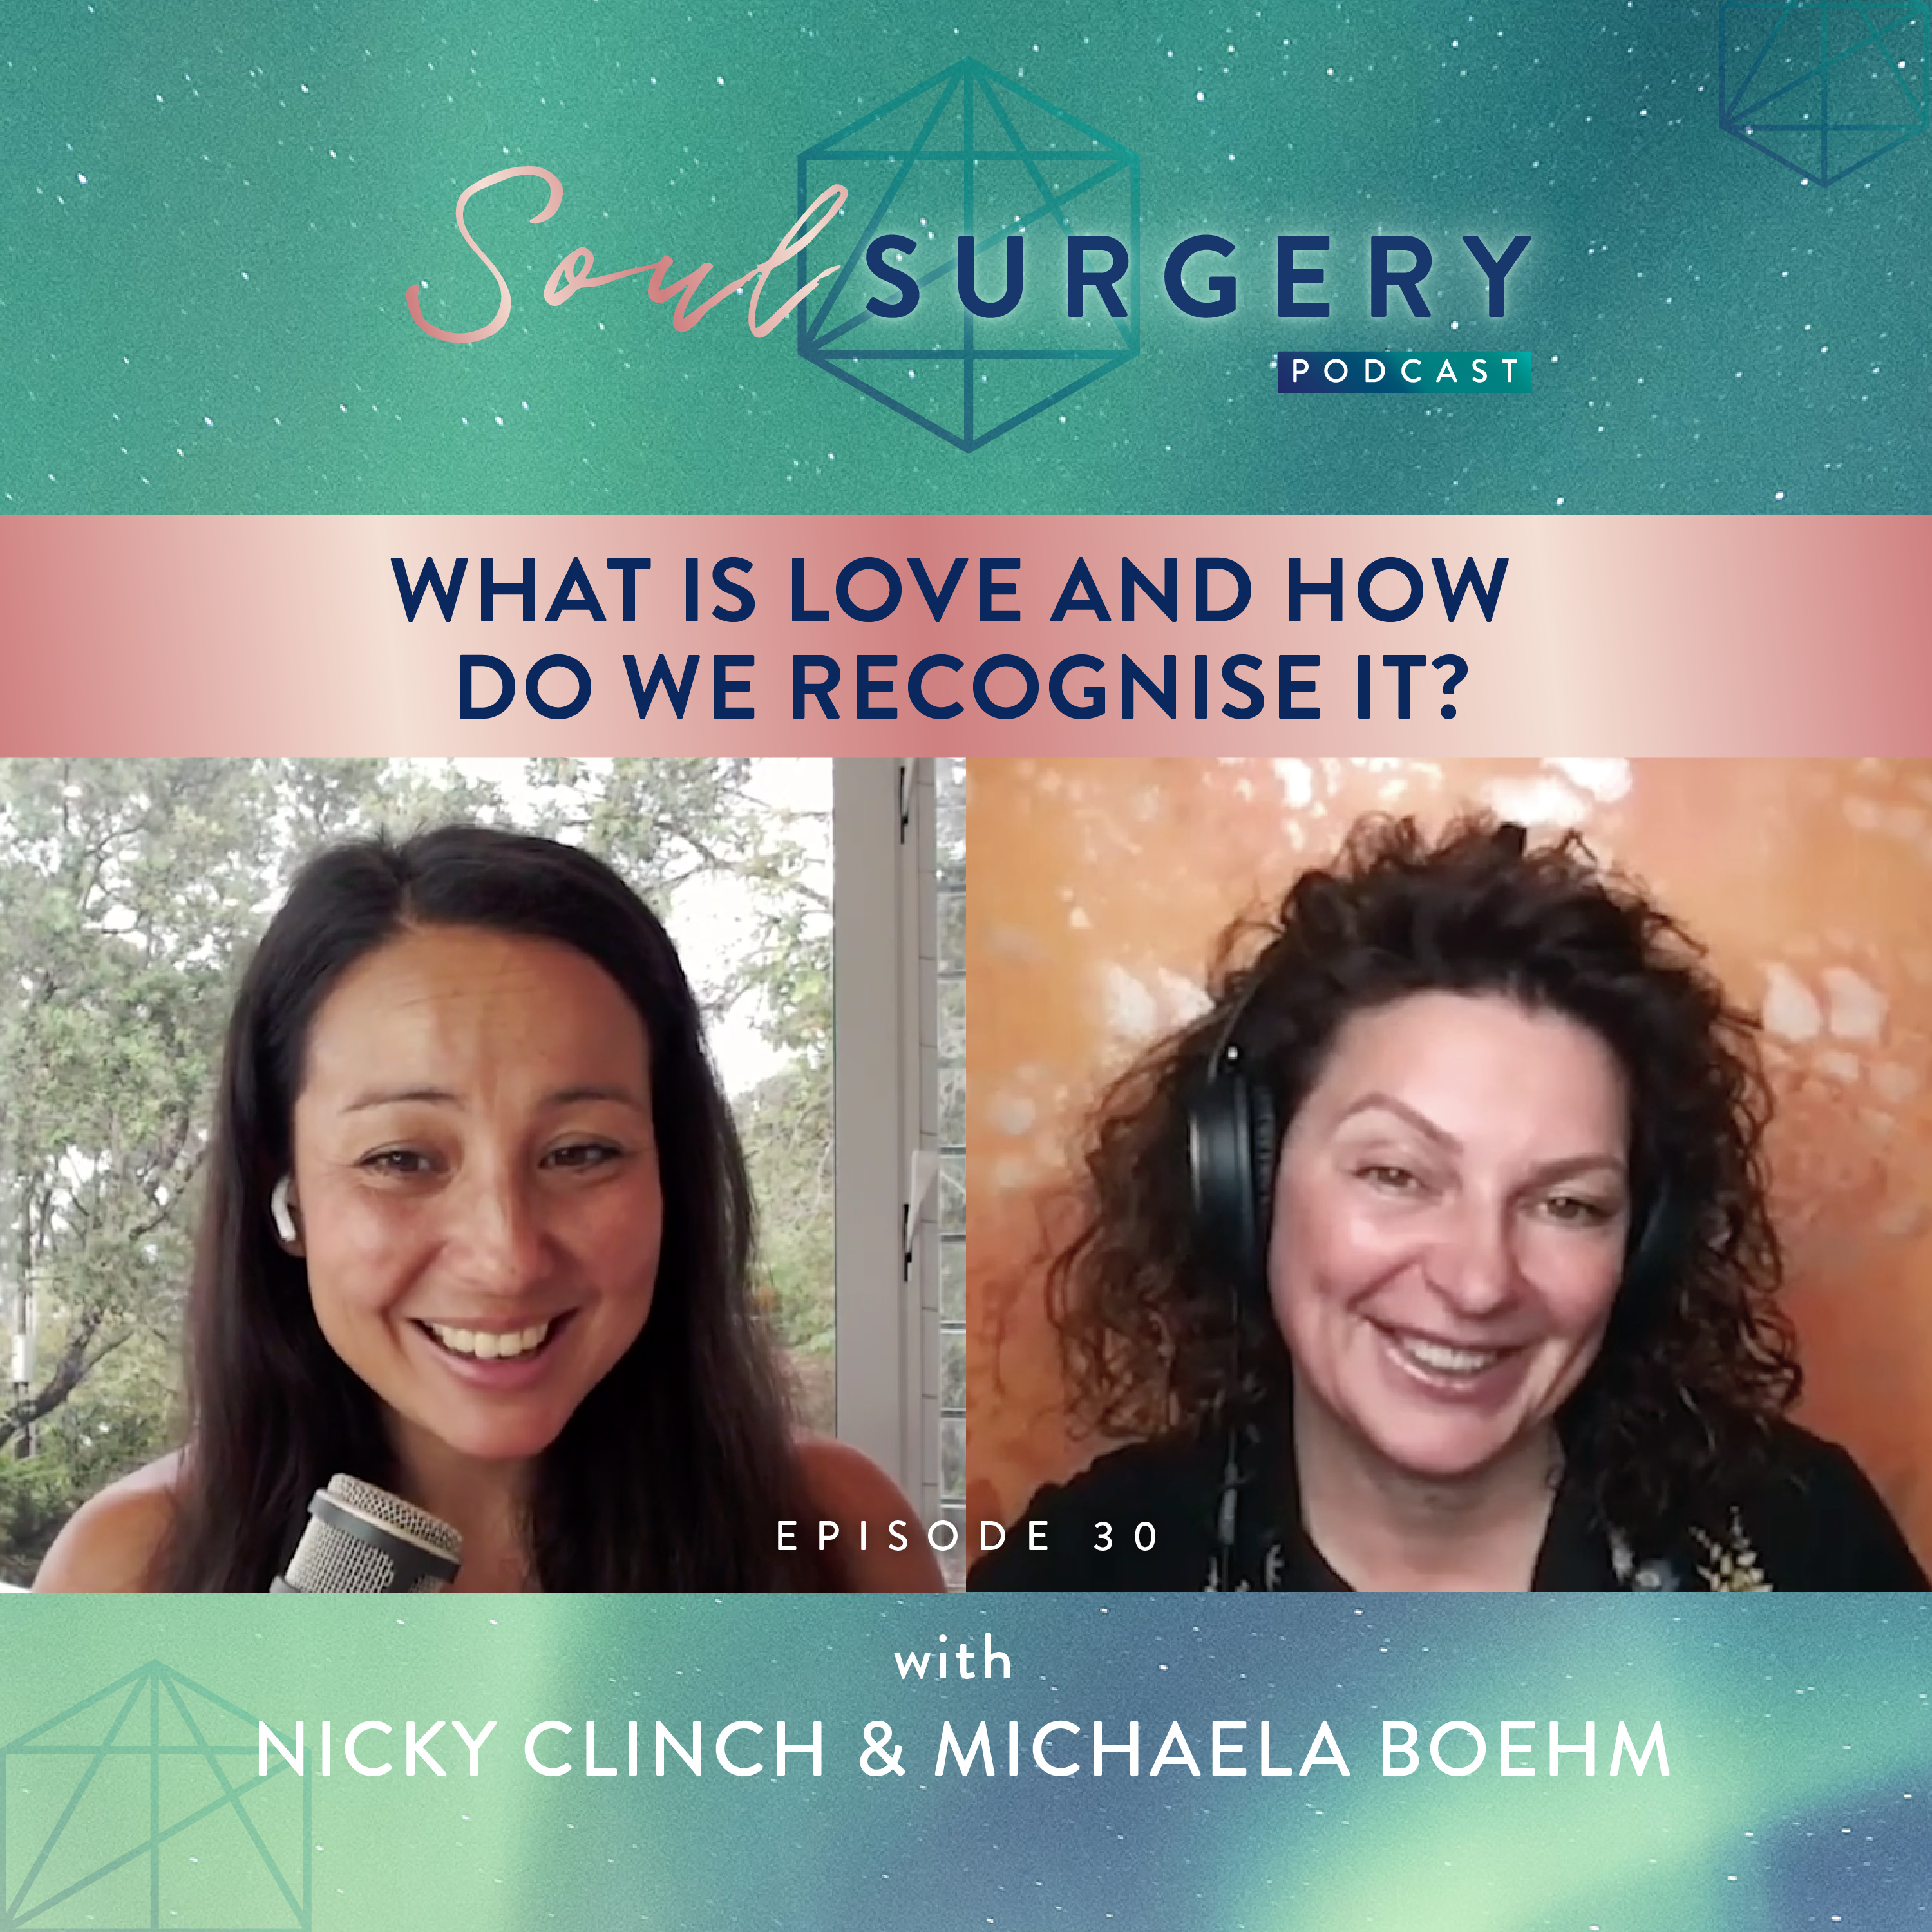 What is Love and how do we recognise it with Michaela Boehm